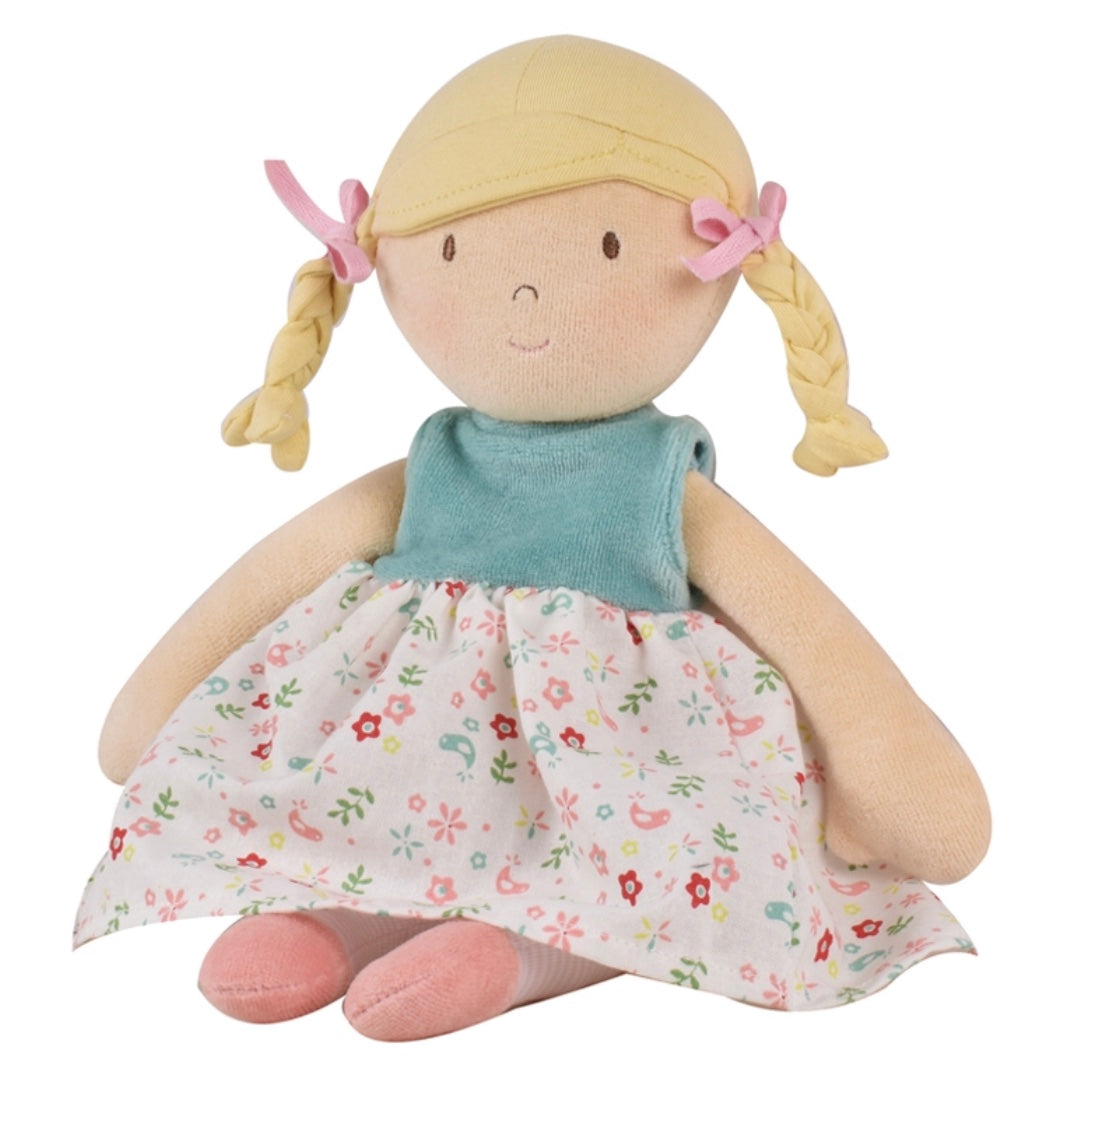 Microwaveable Iris Personalised Rag Doll 32cm